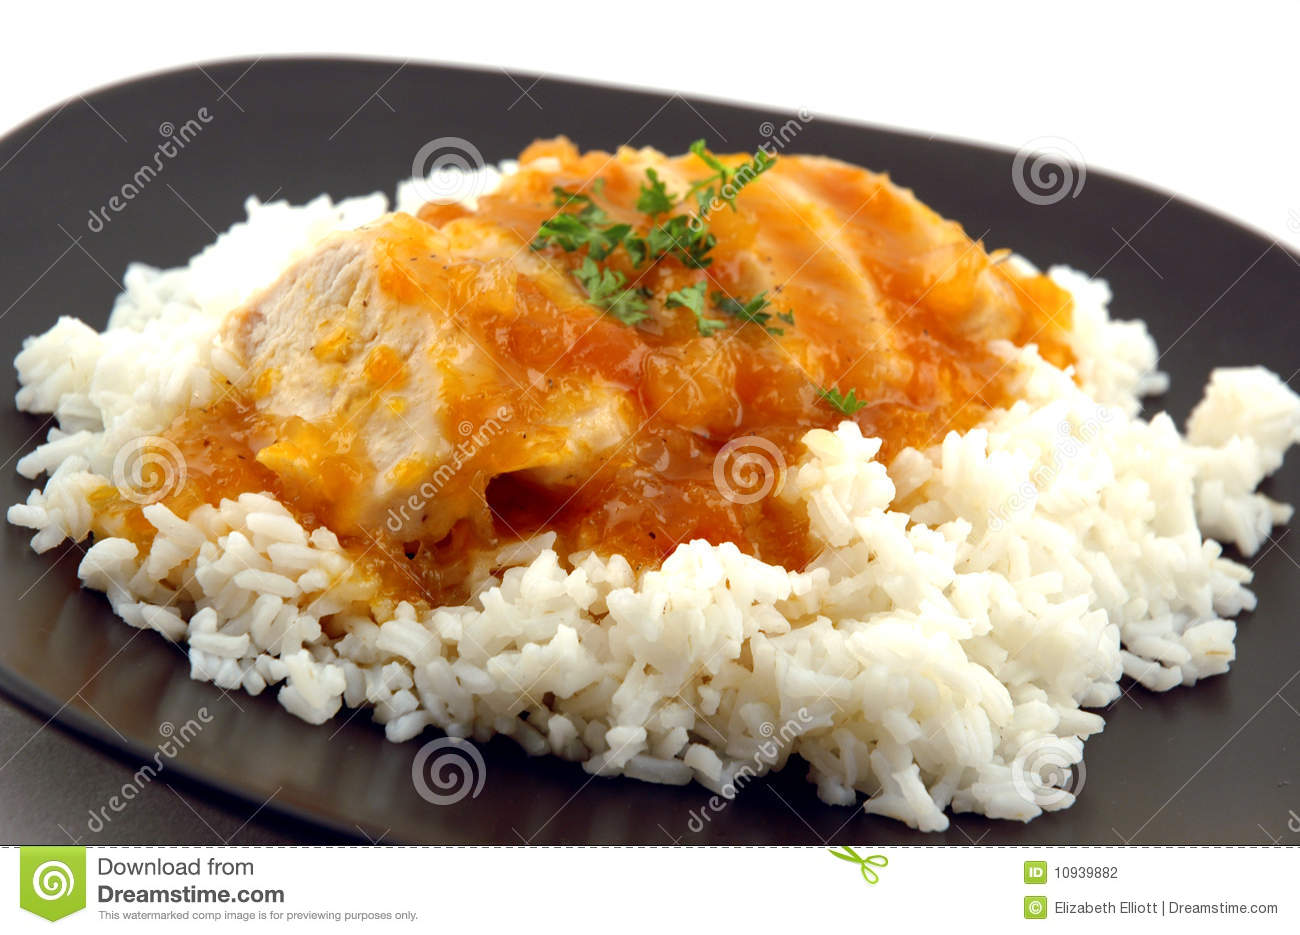 Apricot Glazed Chicken Stock Photography - Image: 10939882